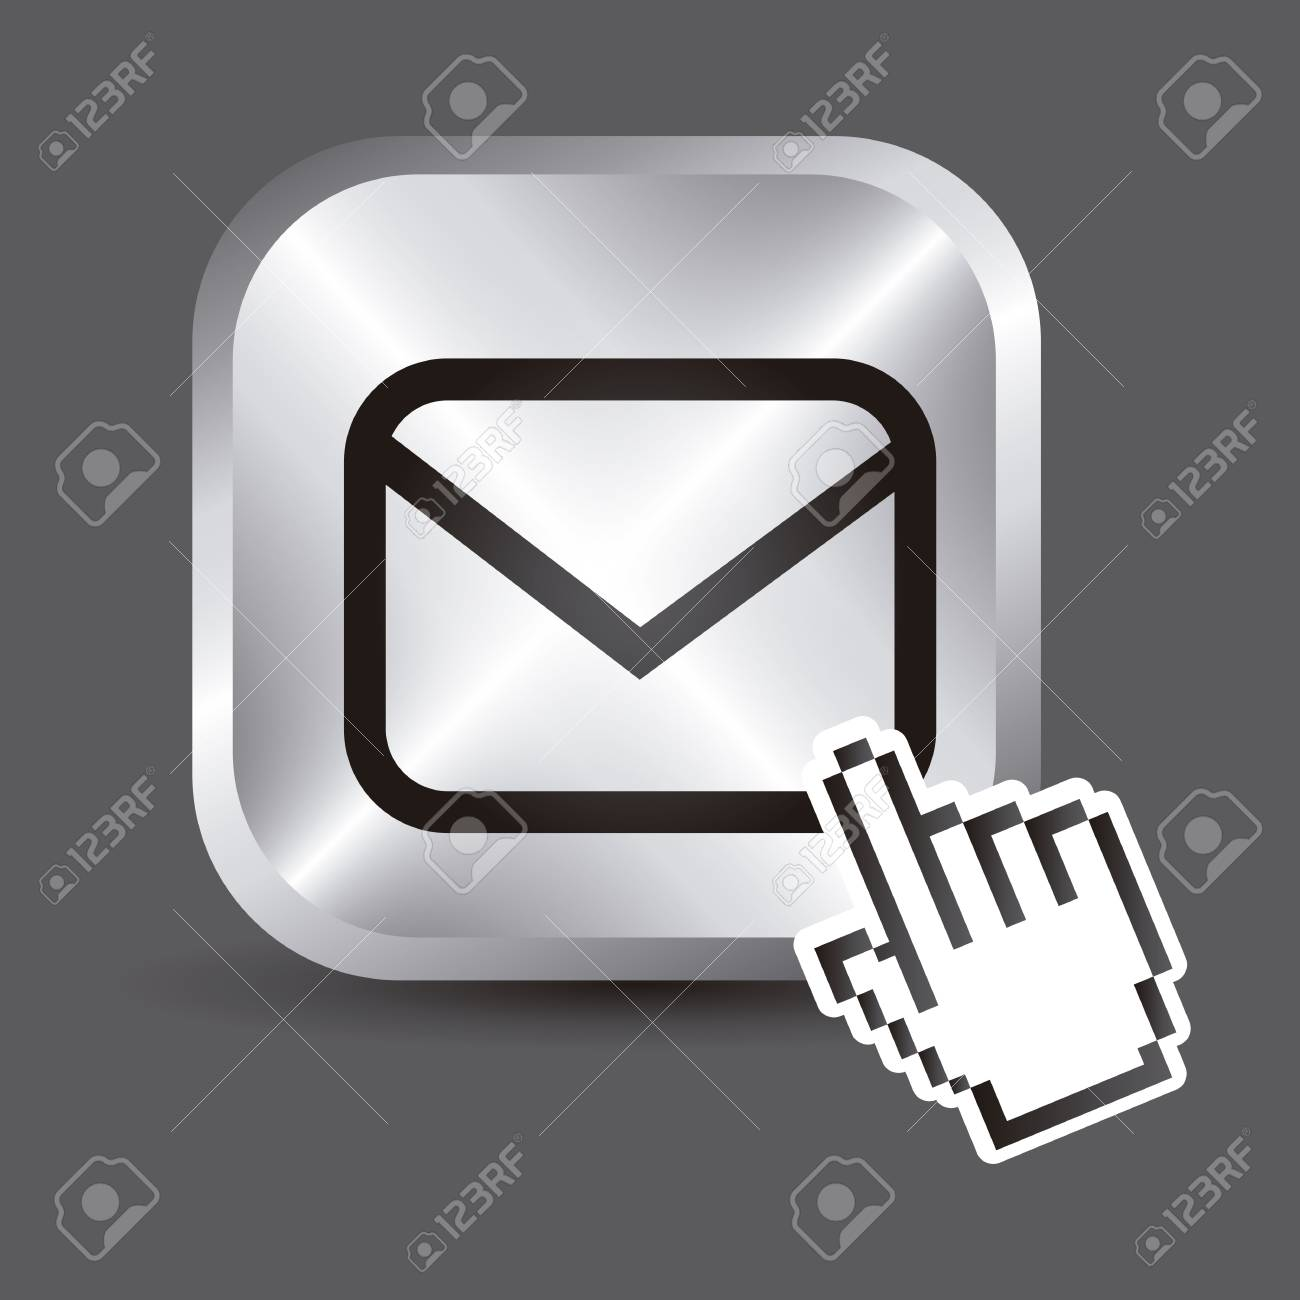 envelope icons over gray background. vector illustration Stock Vector - 19179734